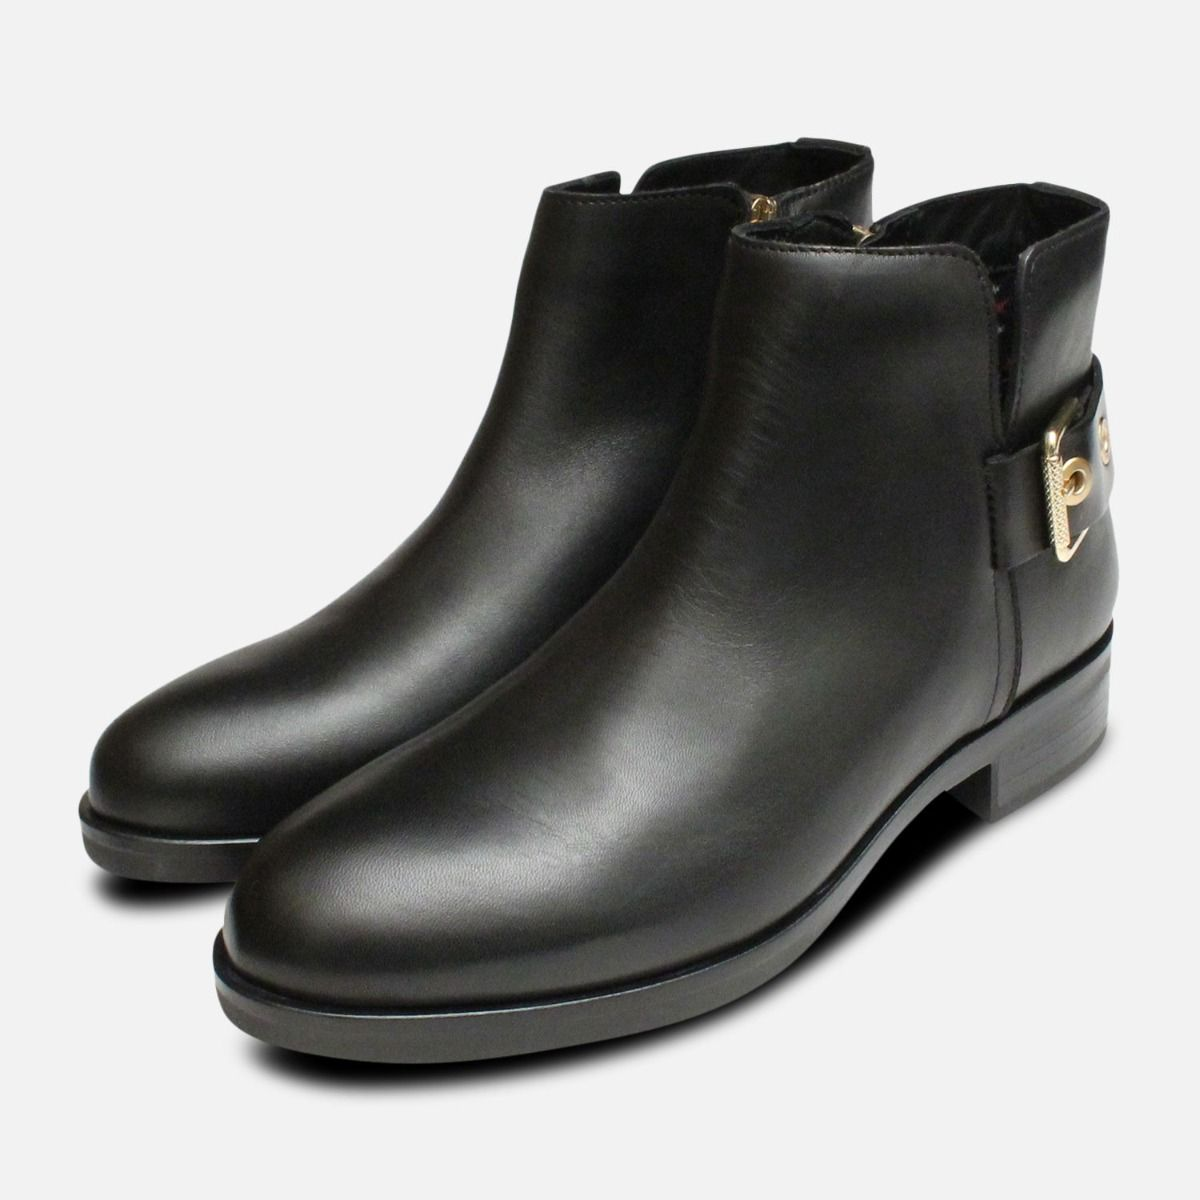 305dcfd2569f3 Tessa Gold Buckle Ankle Boots in Black by Tommy Hilfiger